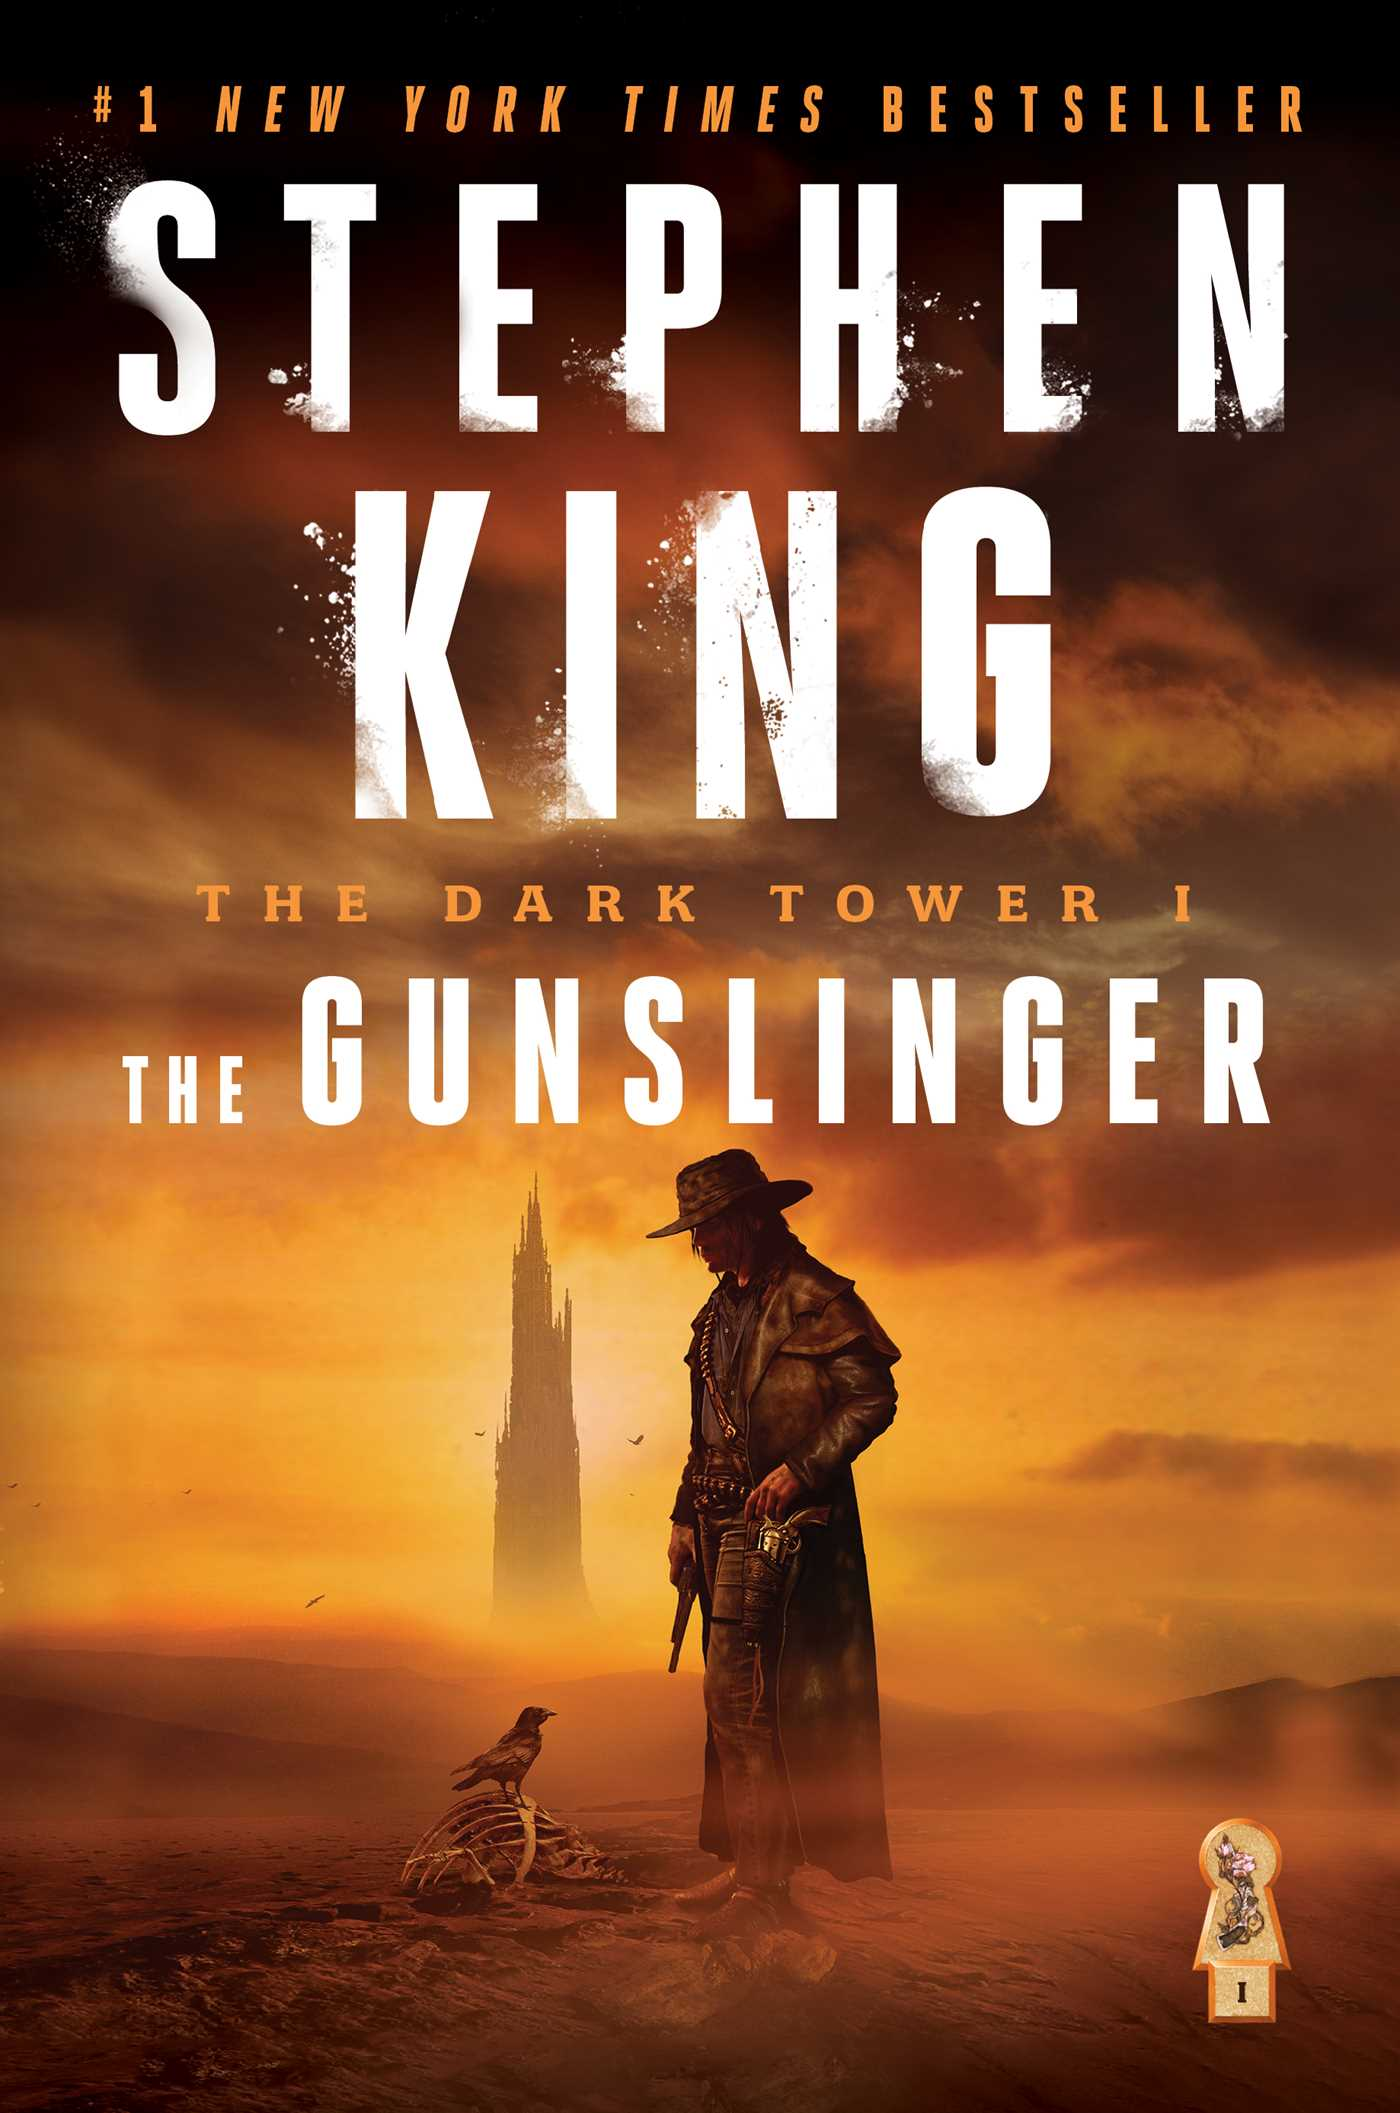 The dark tower i 9781501182105 hr